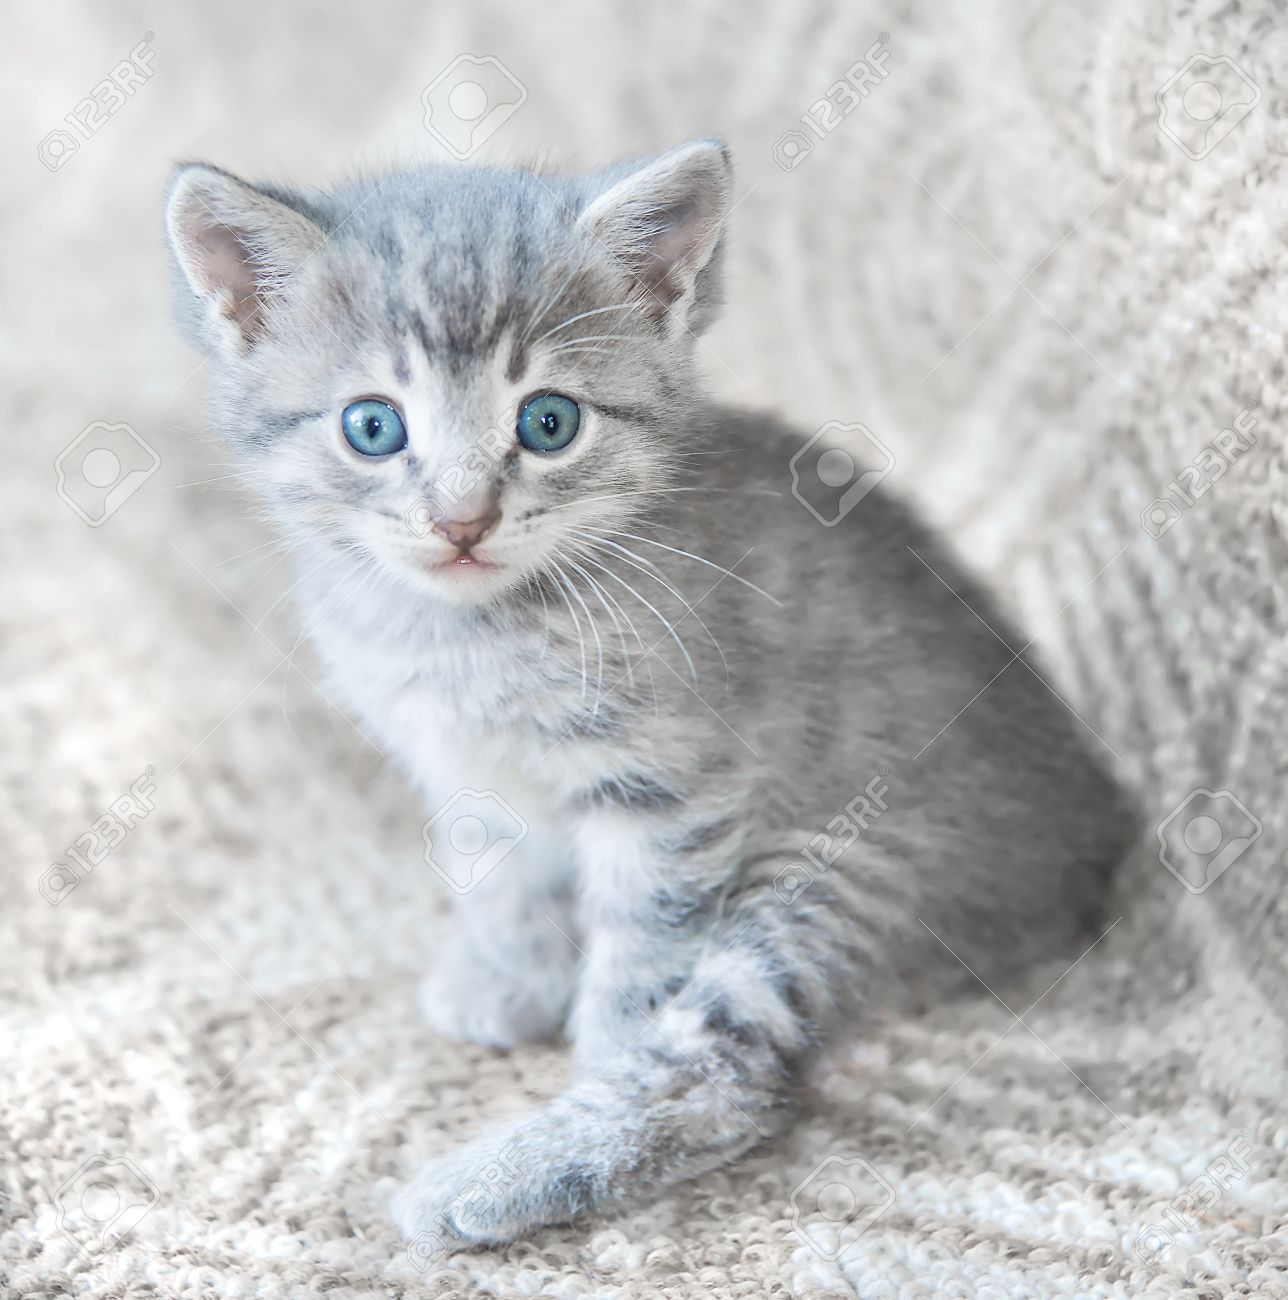 Gray Fluffy Kitten With Blue Eyes Looking At The Camera Stock